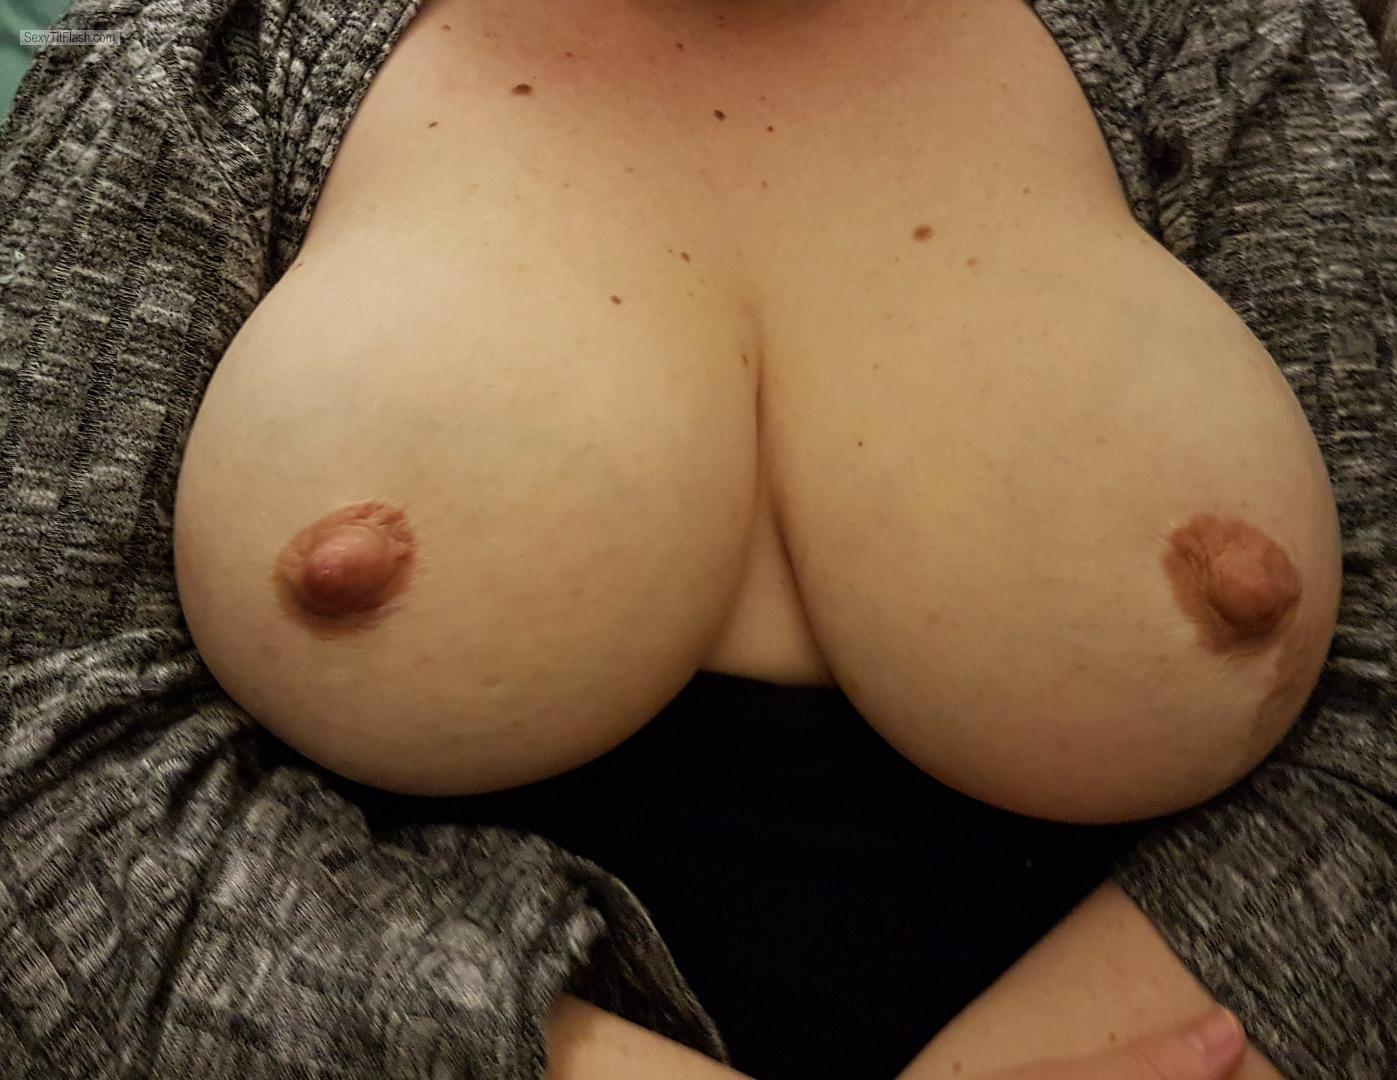 Big Tits Of My Wife Busty SonBon